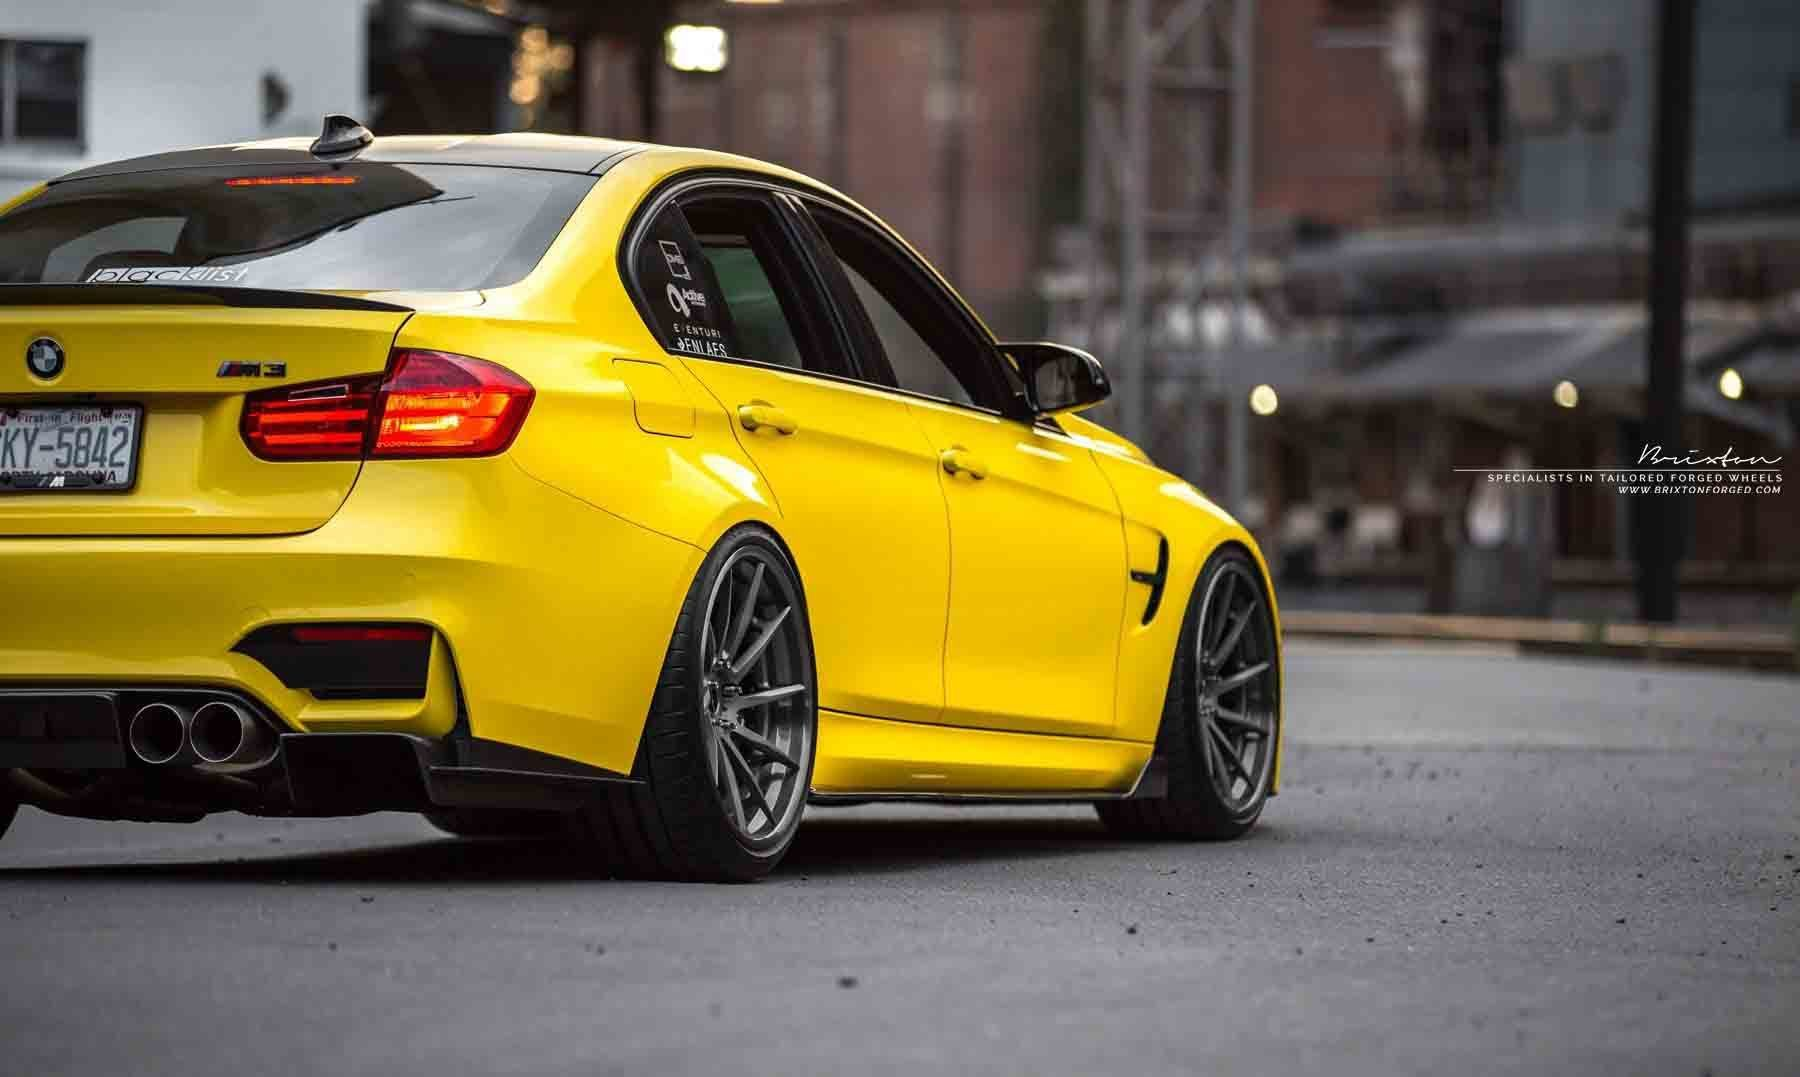 images-products-1-2789-232975077-brixton-forged-wheels-r10d-targa-bmw-f80-m3-yellow-gmp-performance-forged-wheels-smoke-black-8-1.jpg